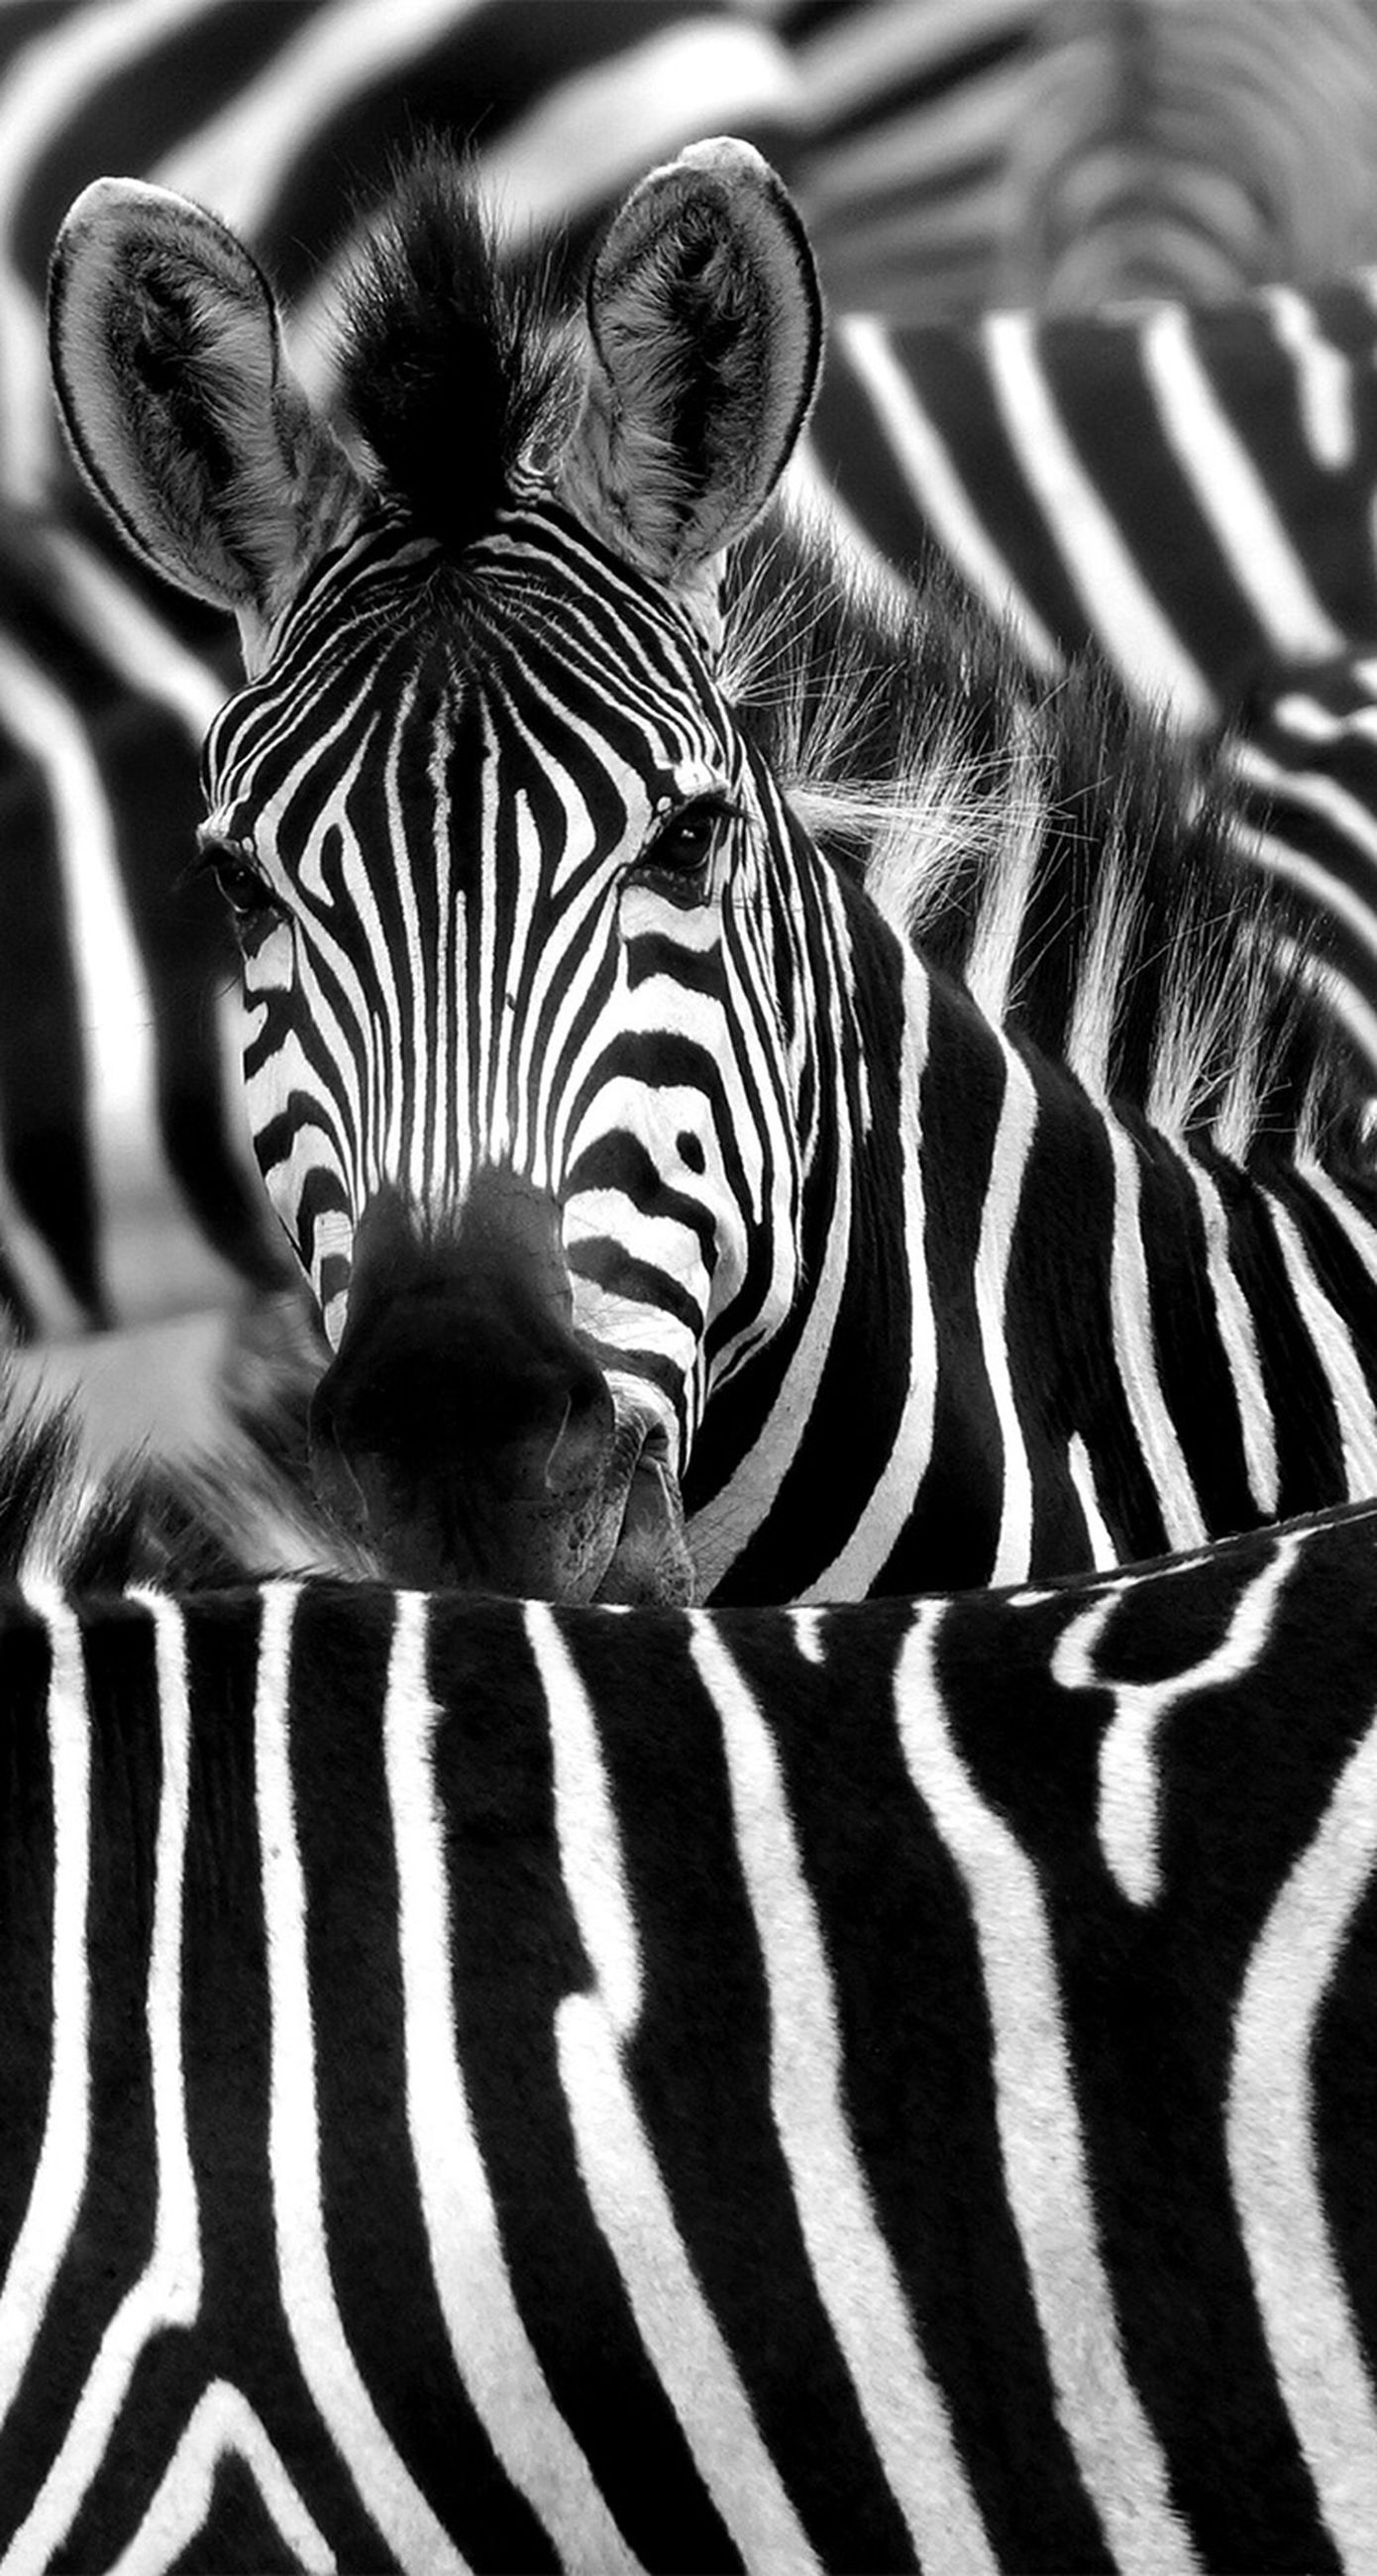 animal themes, one animal, striped, mammal, animal markings, zebra, pattern, natural pattern, wildlife, close-up, safari animals, animal body part, animal head, animals in the wild, relaxation, tiger, lying down, no people, indoors, domestic animals